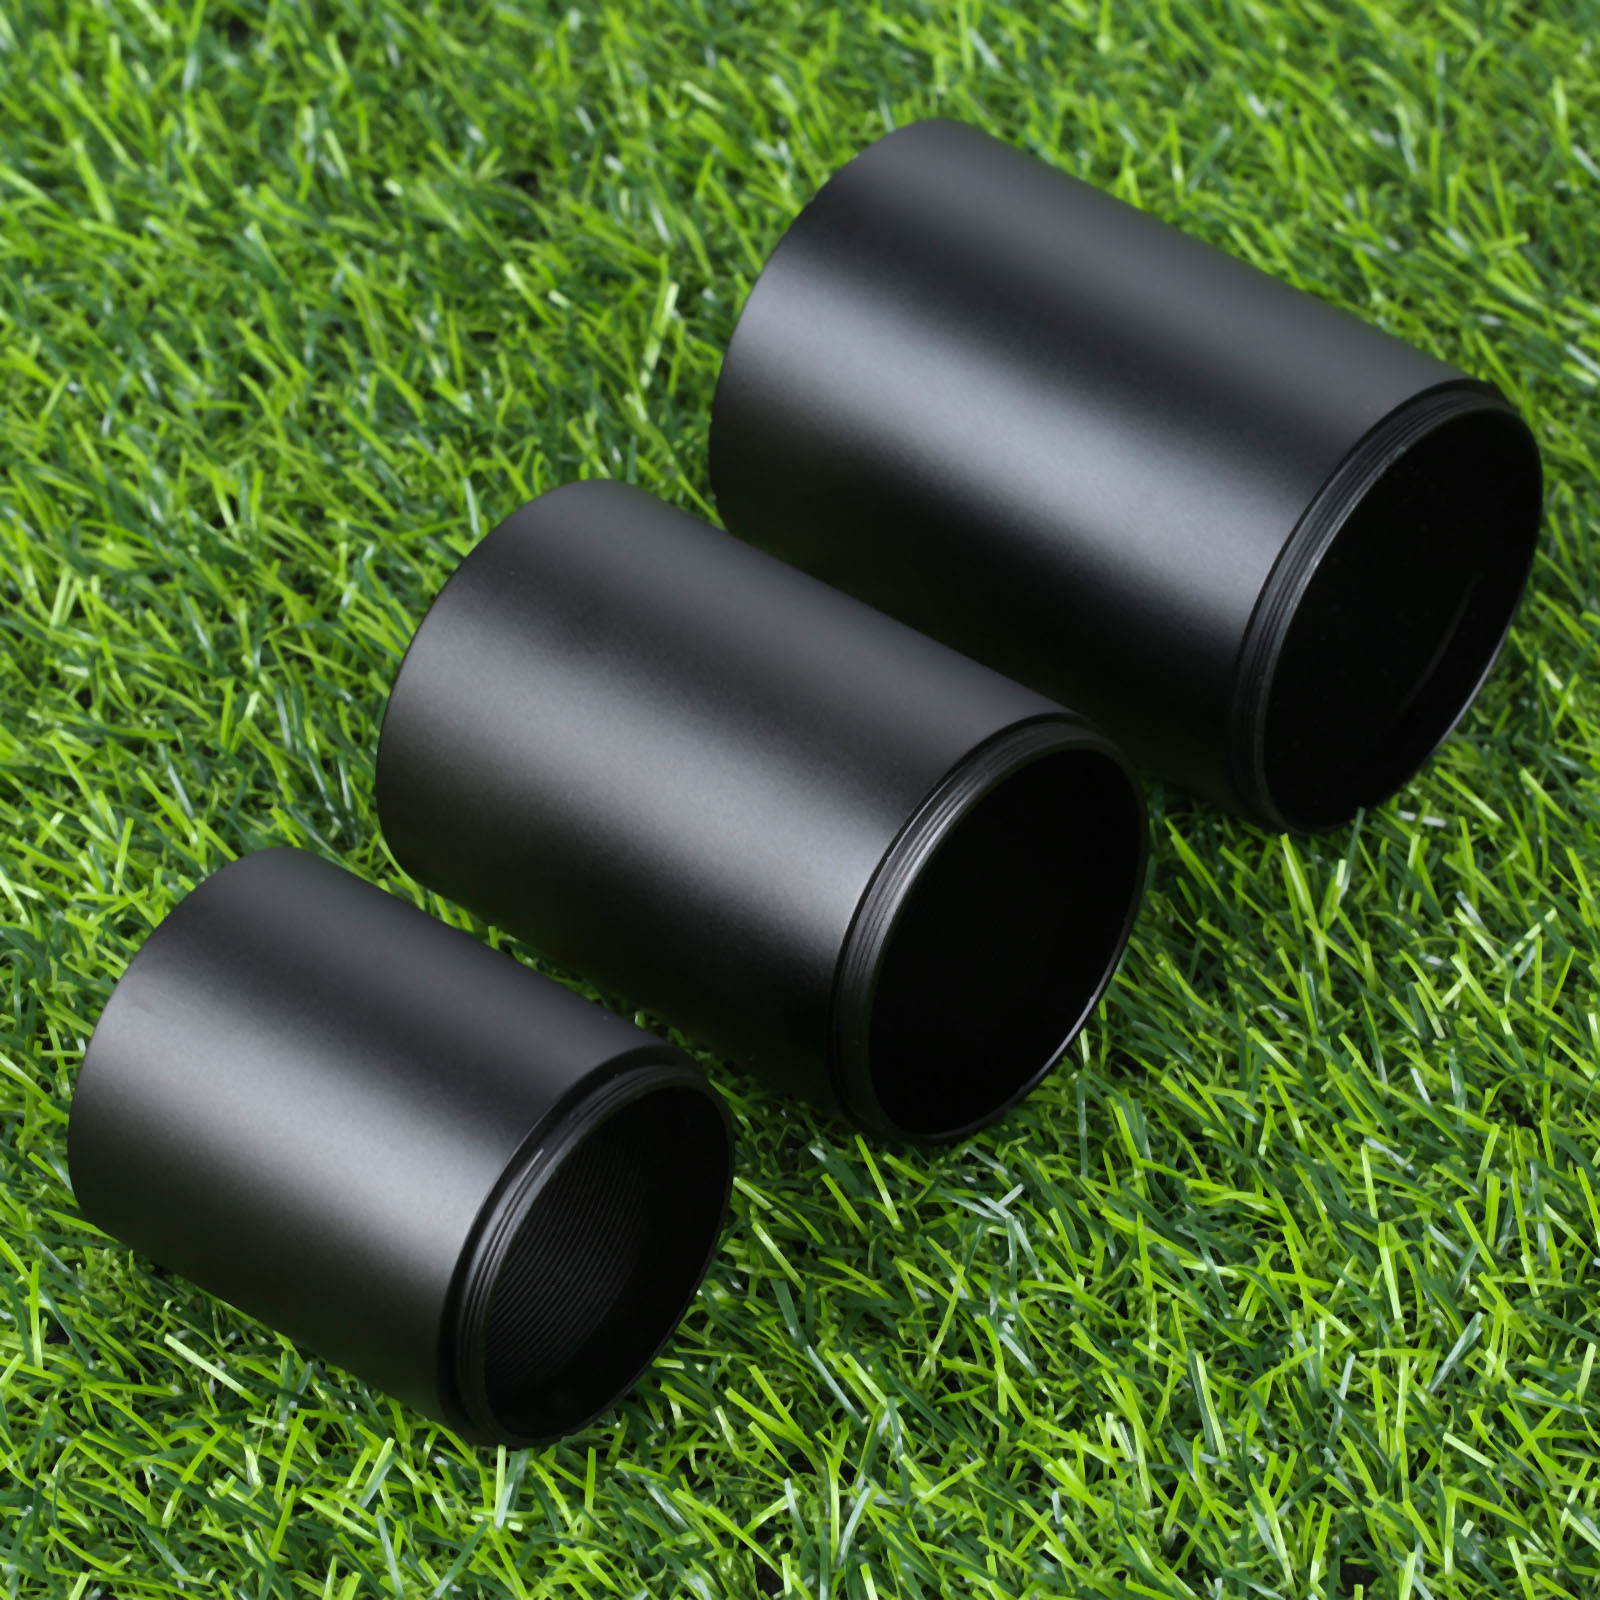 Hunting Aluminum Alloy For 32mm 40mm 50mm Telescope Sun Shade Tube Lens Tactical Rifle Pistol Scope Objective Lens Sunshade Tube